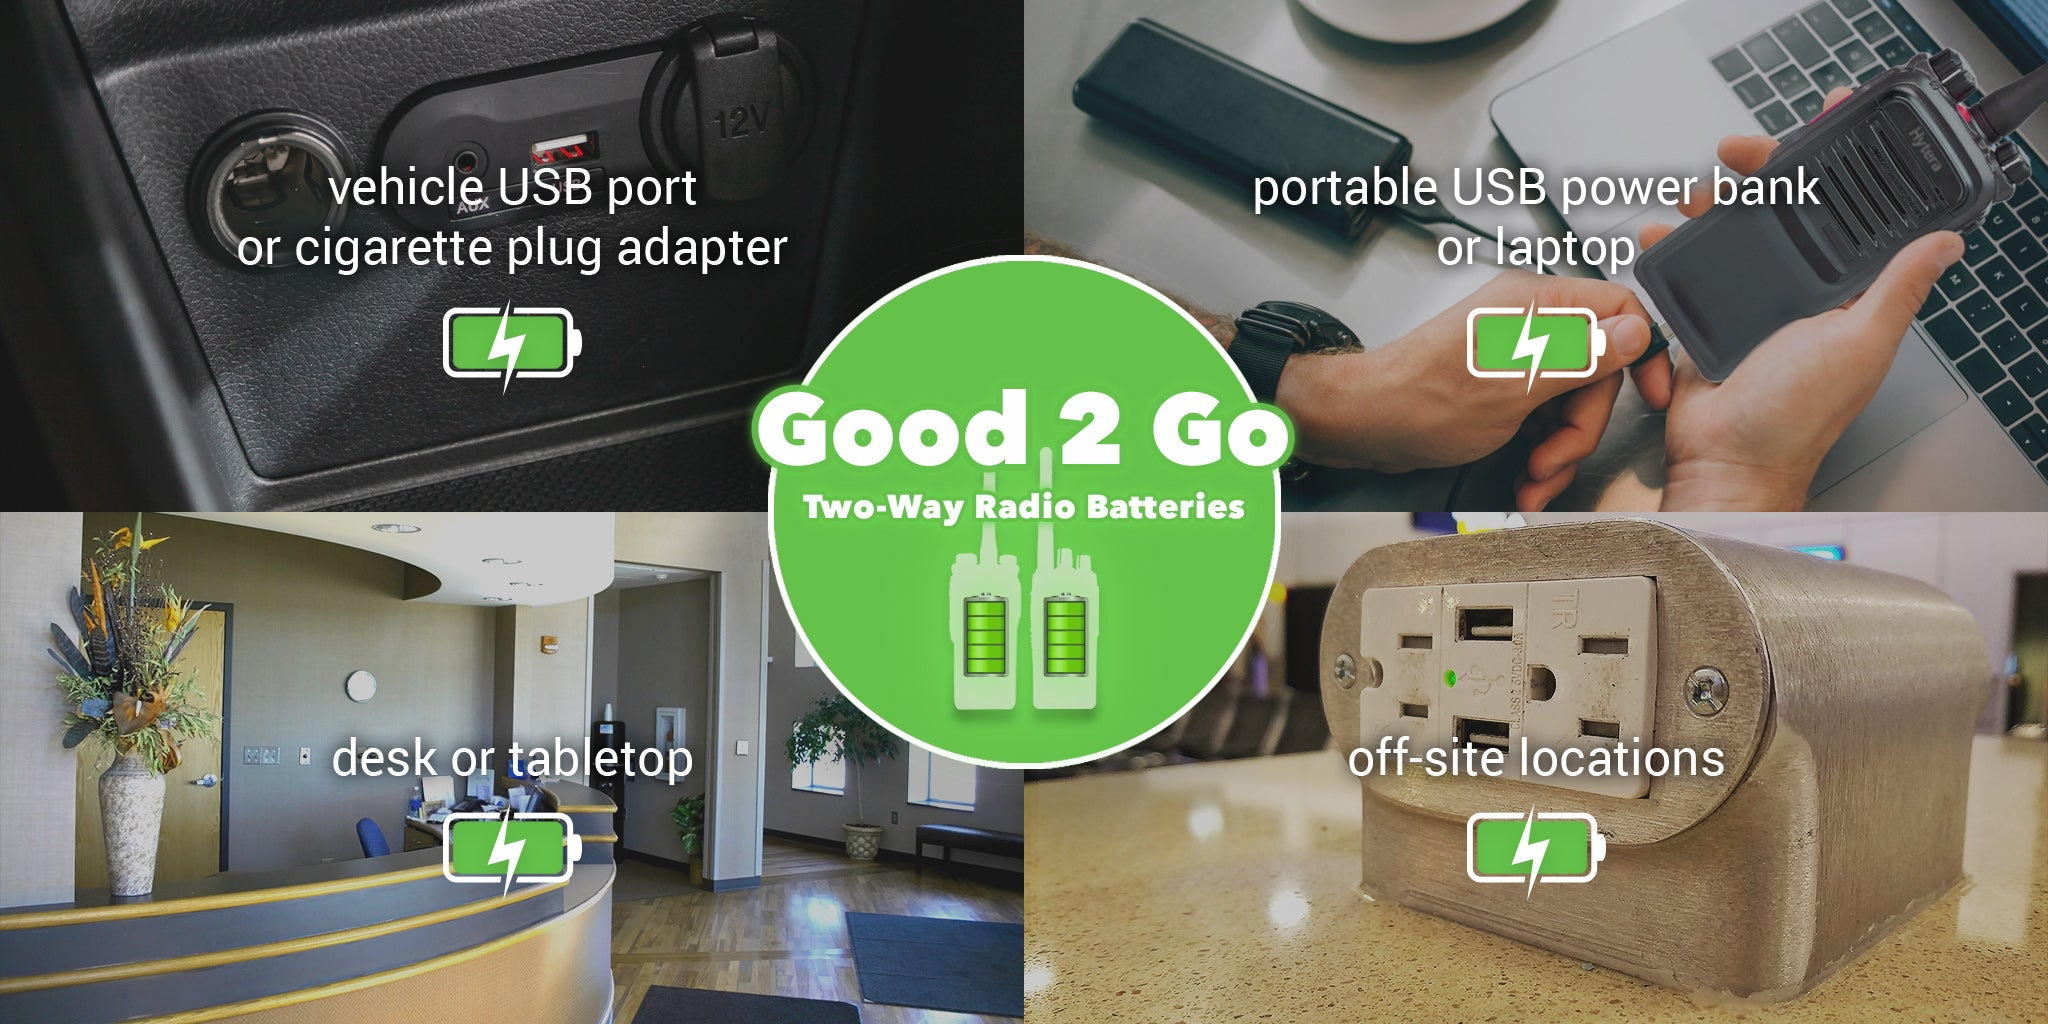 Vehicle USB port or cigarette plug adapter. Portable USB power bank or laptop. Desk or tabletop. Off-site locations.